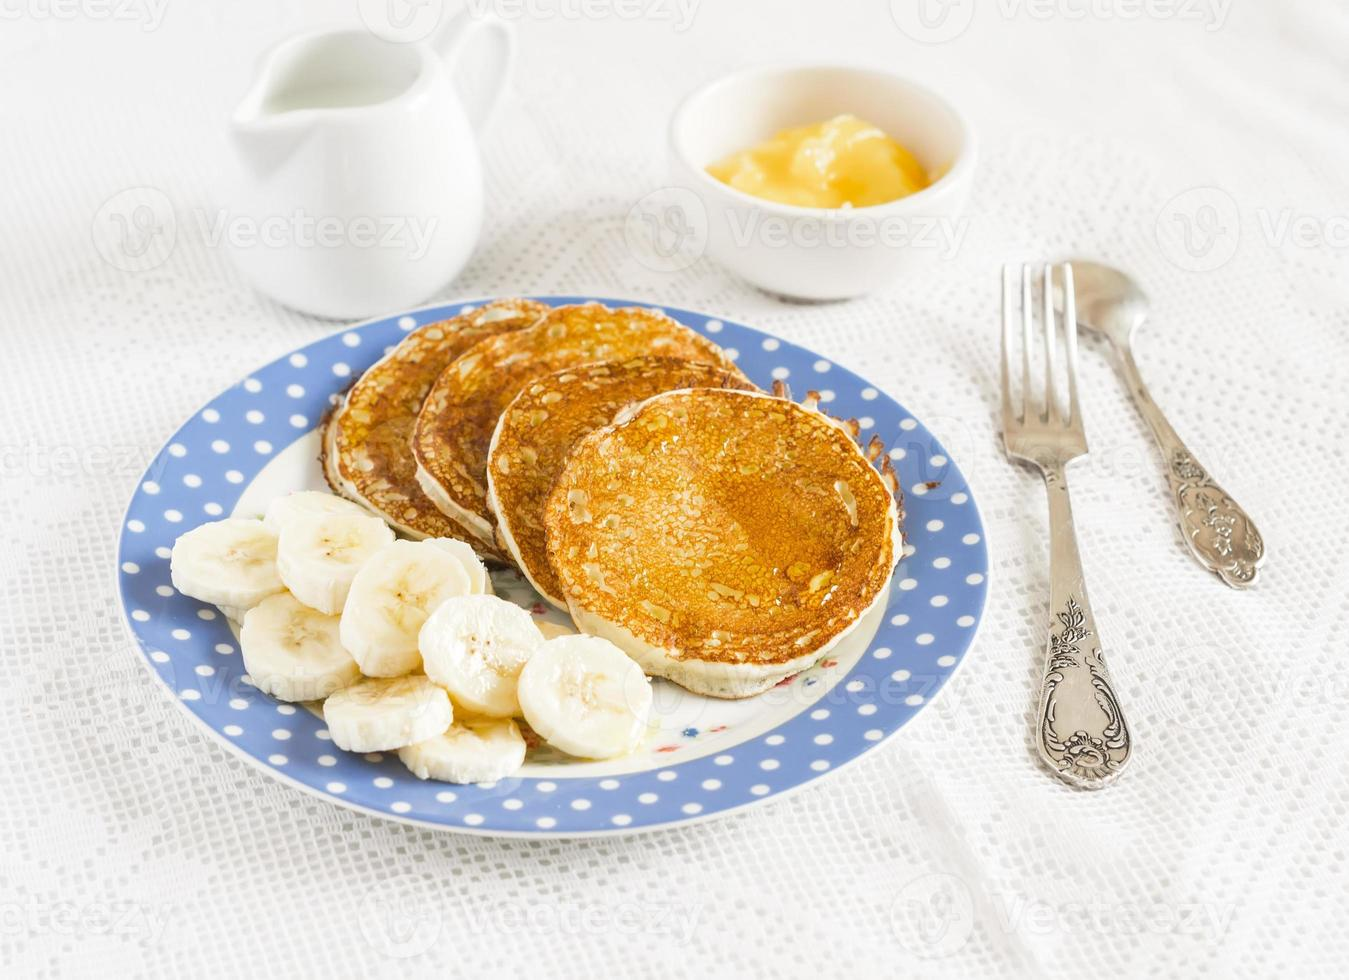 Banana pancake. Delicious breakfast. On a light surface photo